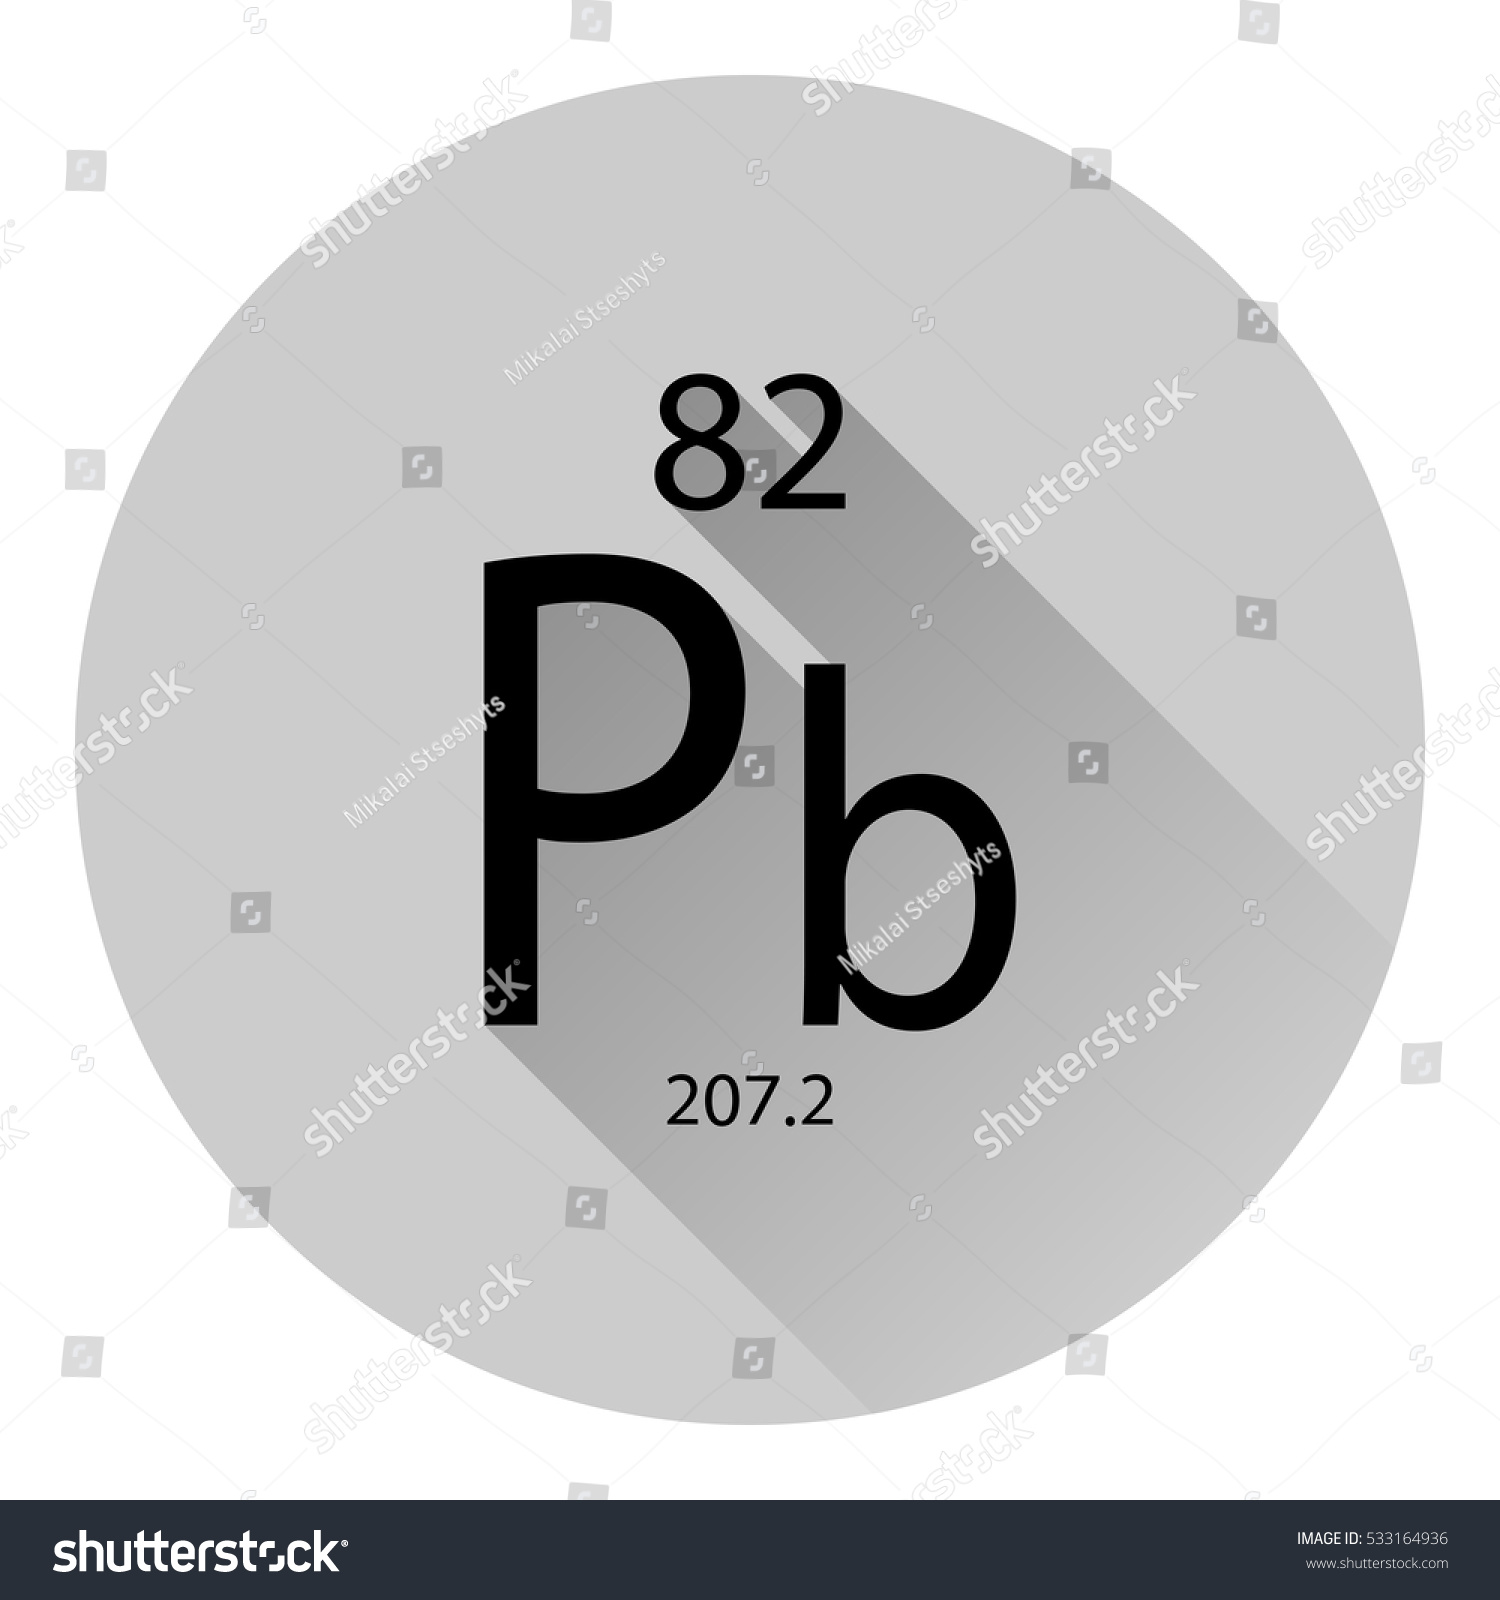 Periodic table element lead basic properties stock vector the periodic table element lead with the basic properties flat style with long shadow gamestrikefo Choice Image